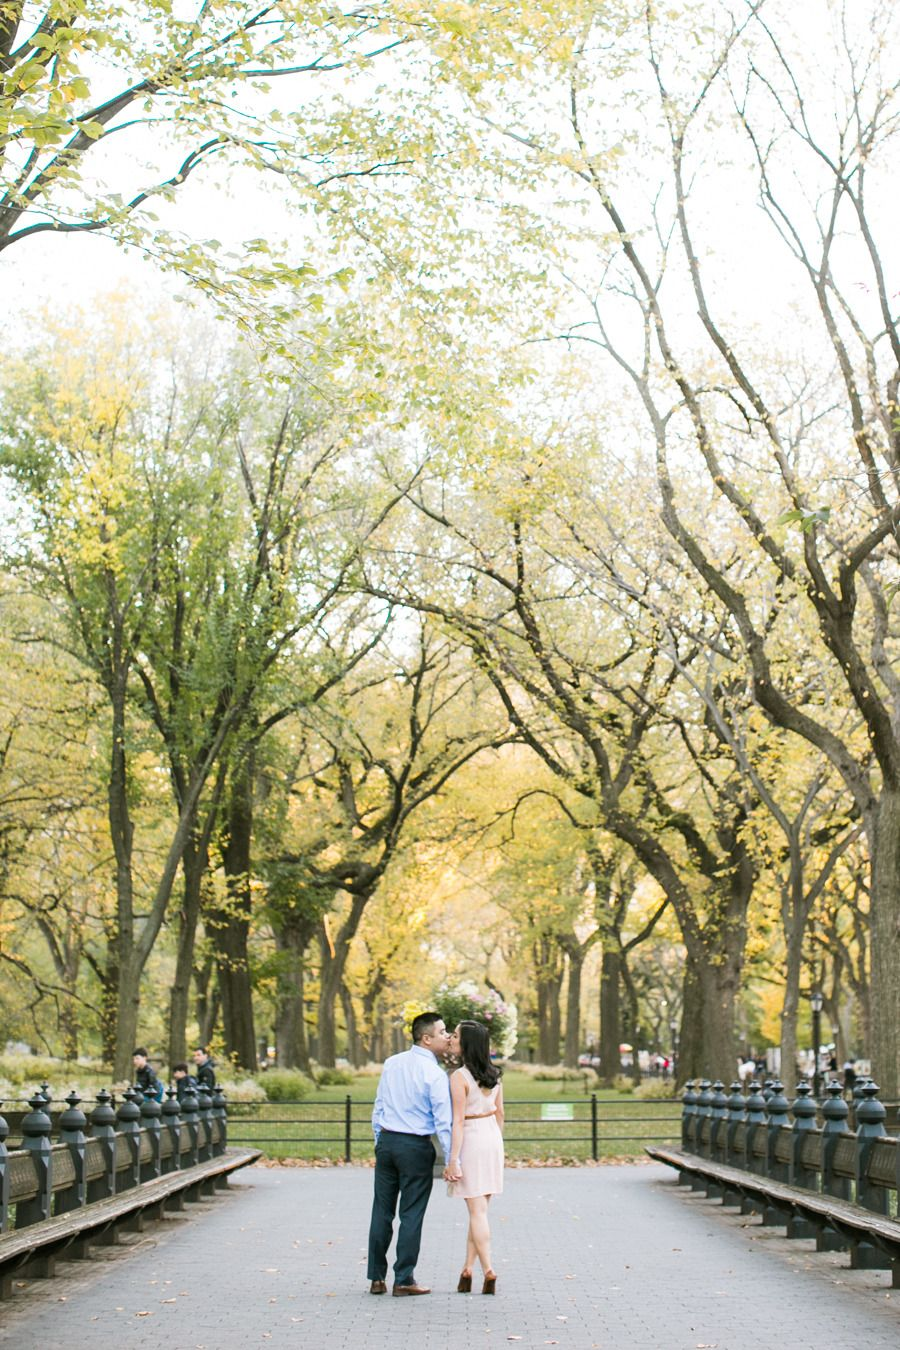 NYC engagement shoot | Photography: Jasmine Lee Photography - www.jasmineleephotography.com/  Read More: http://www.stylemepretty.com/2015/03/12/autumn-engagement-session/